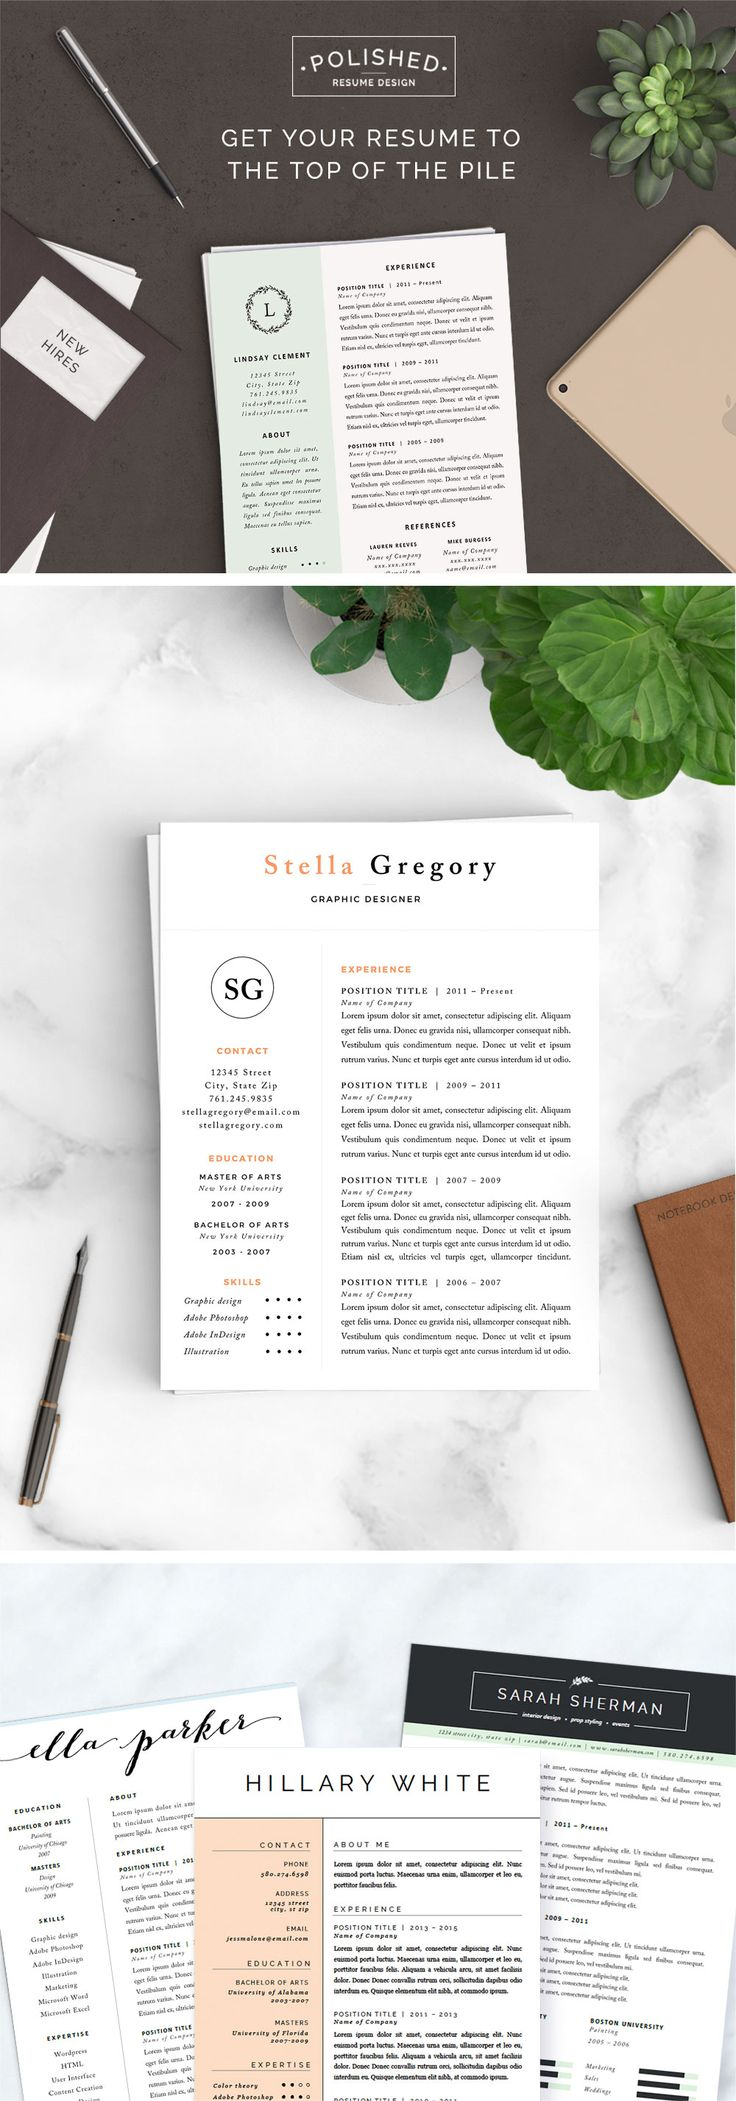 Amazing Resume - Picture Ideas References